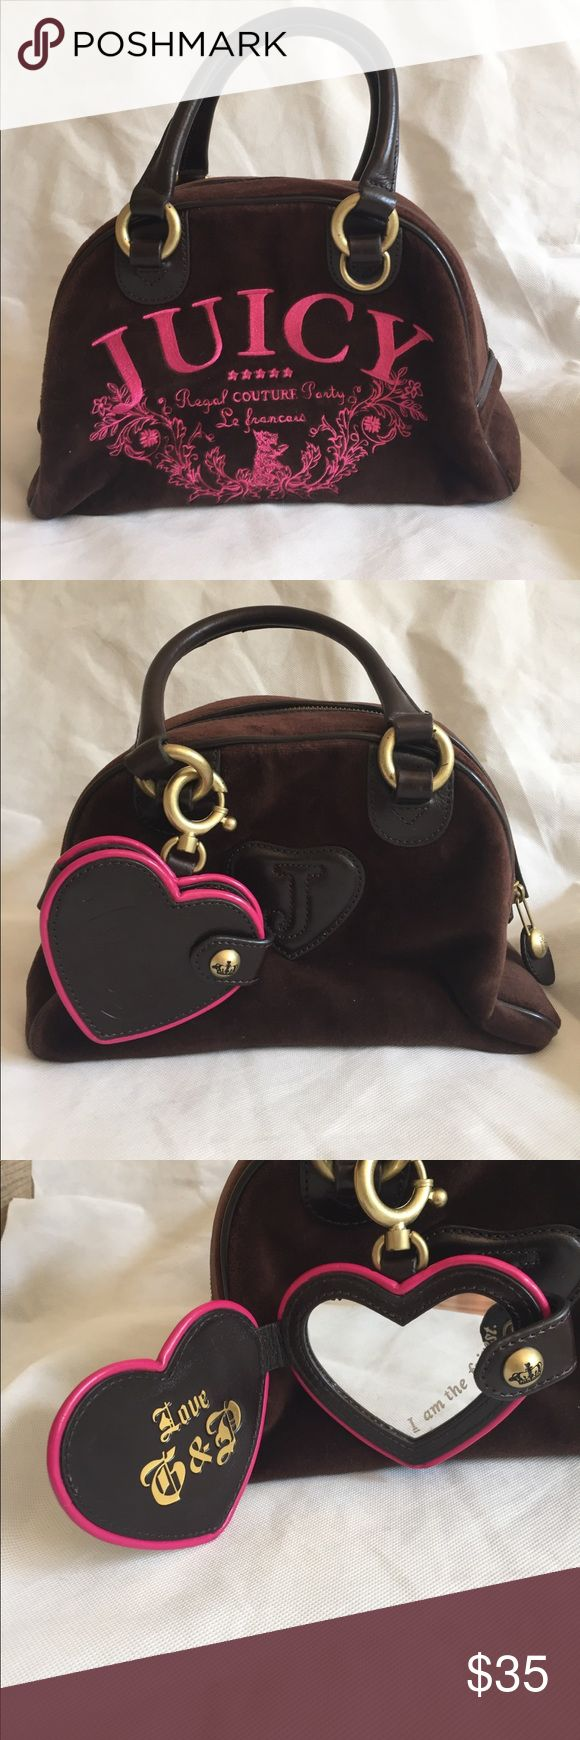 Juicy Couture Suede Handbag Handbag is in very good condition.Bottom has a few marks on it.Handle has some peeling. Juicy Couture Bags